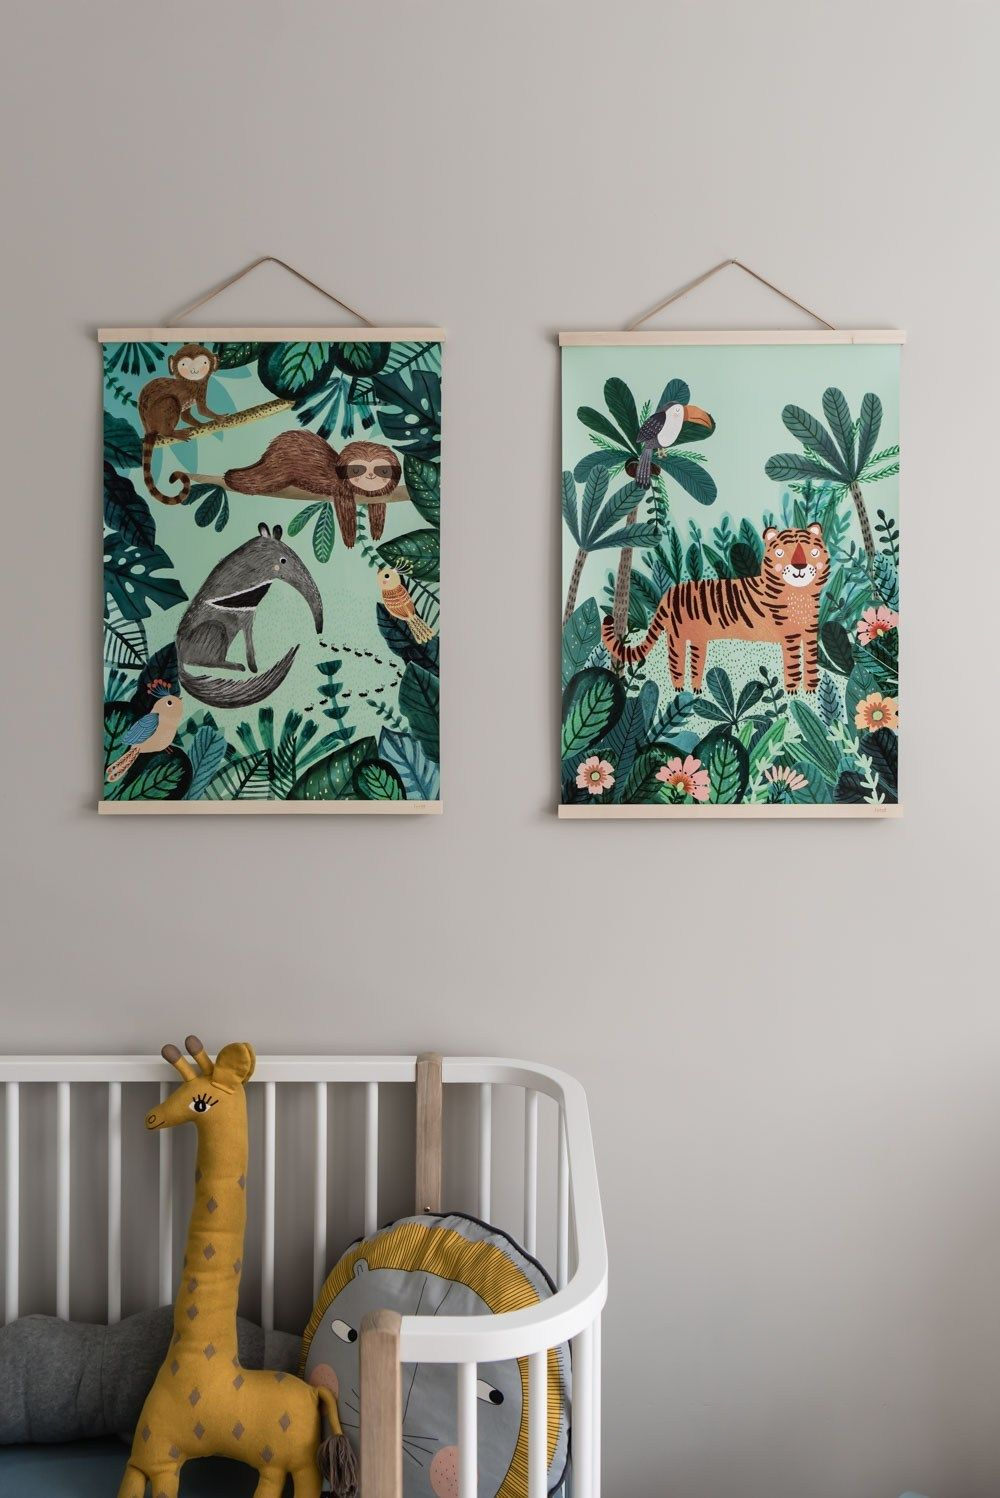 Nursery Trends 2020.6 Hottest Baby Nursery Decor Trends For 2019 Into 2020 In